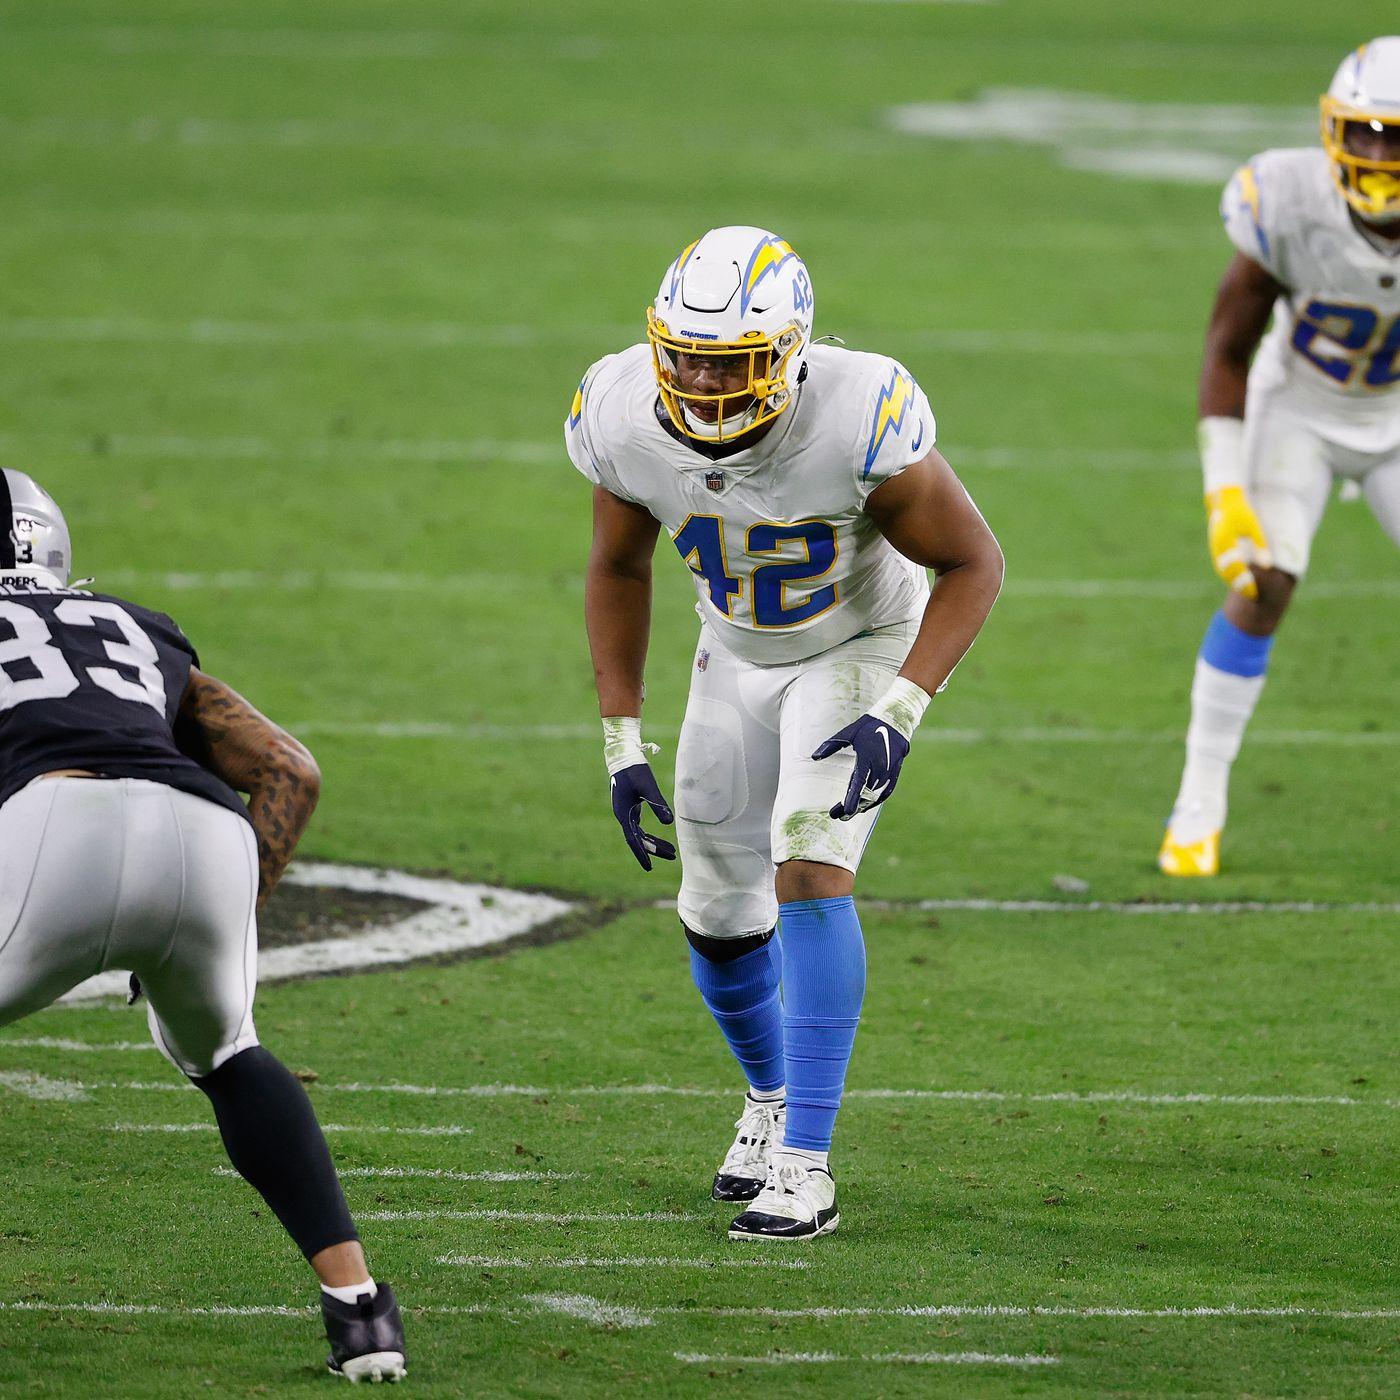 Chargers News: Uchenna Nwosu picked as Bolts' breakout player in 2021 - Bolts From The Blue